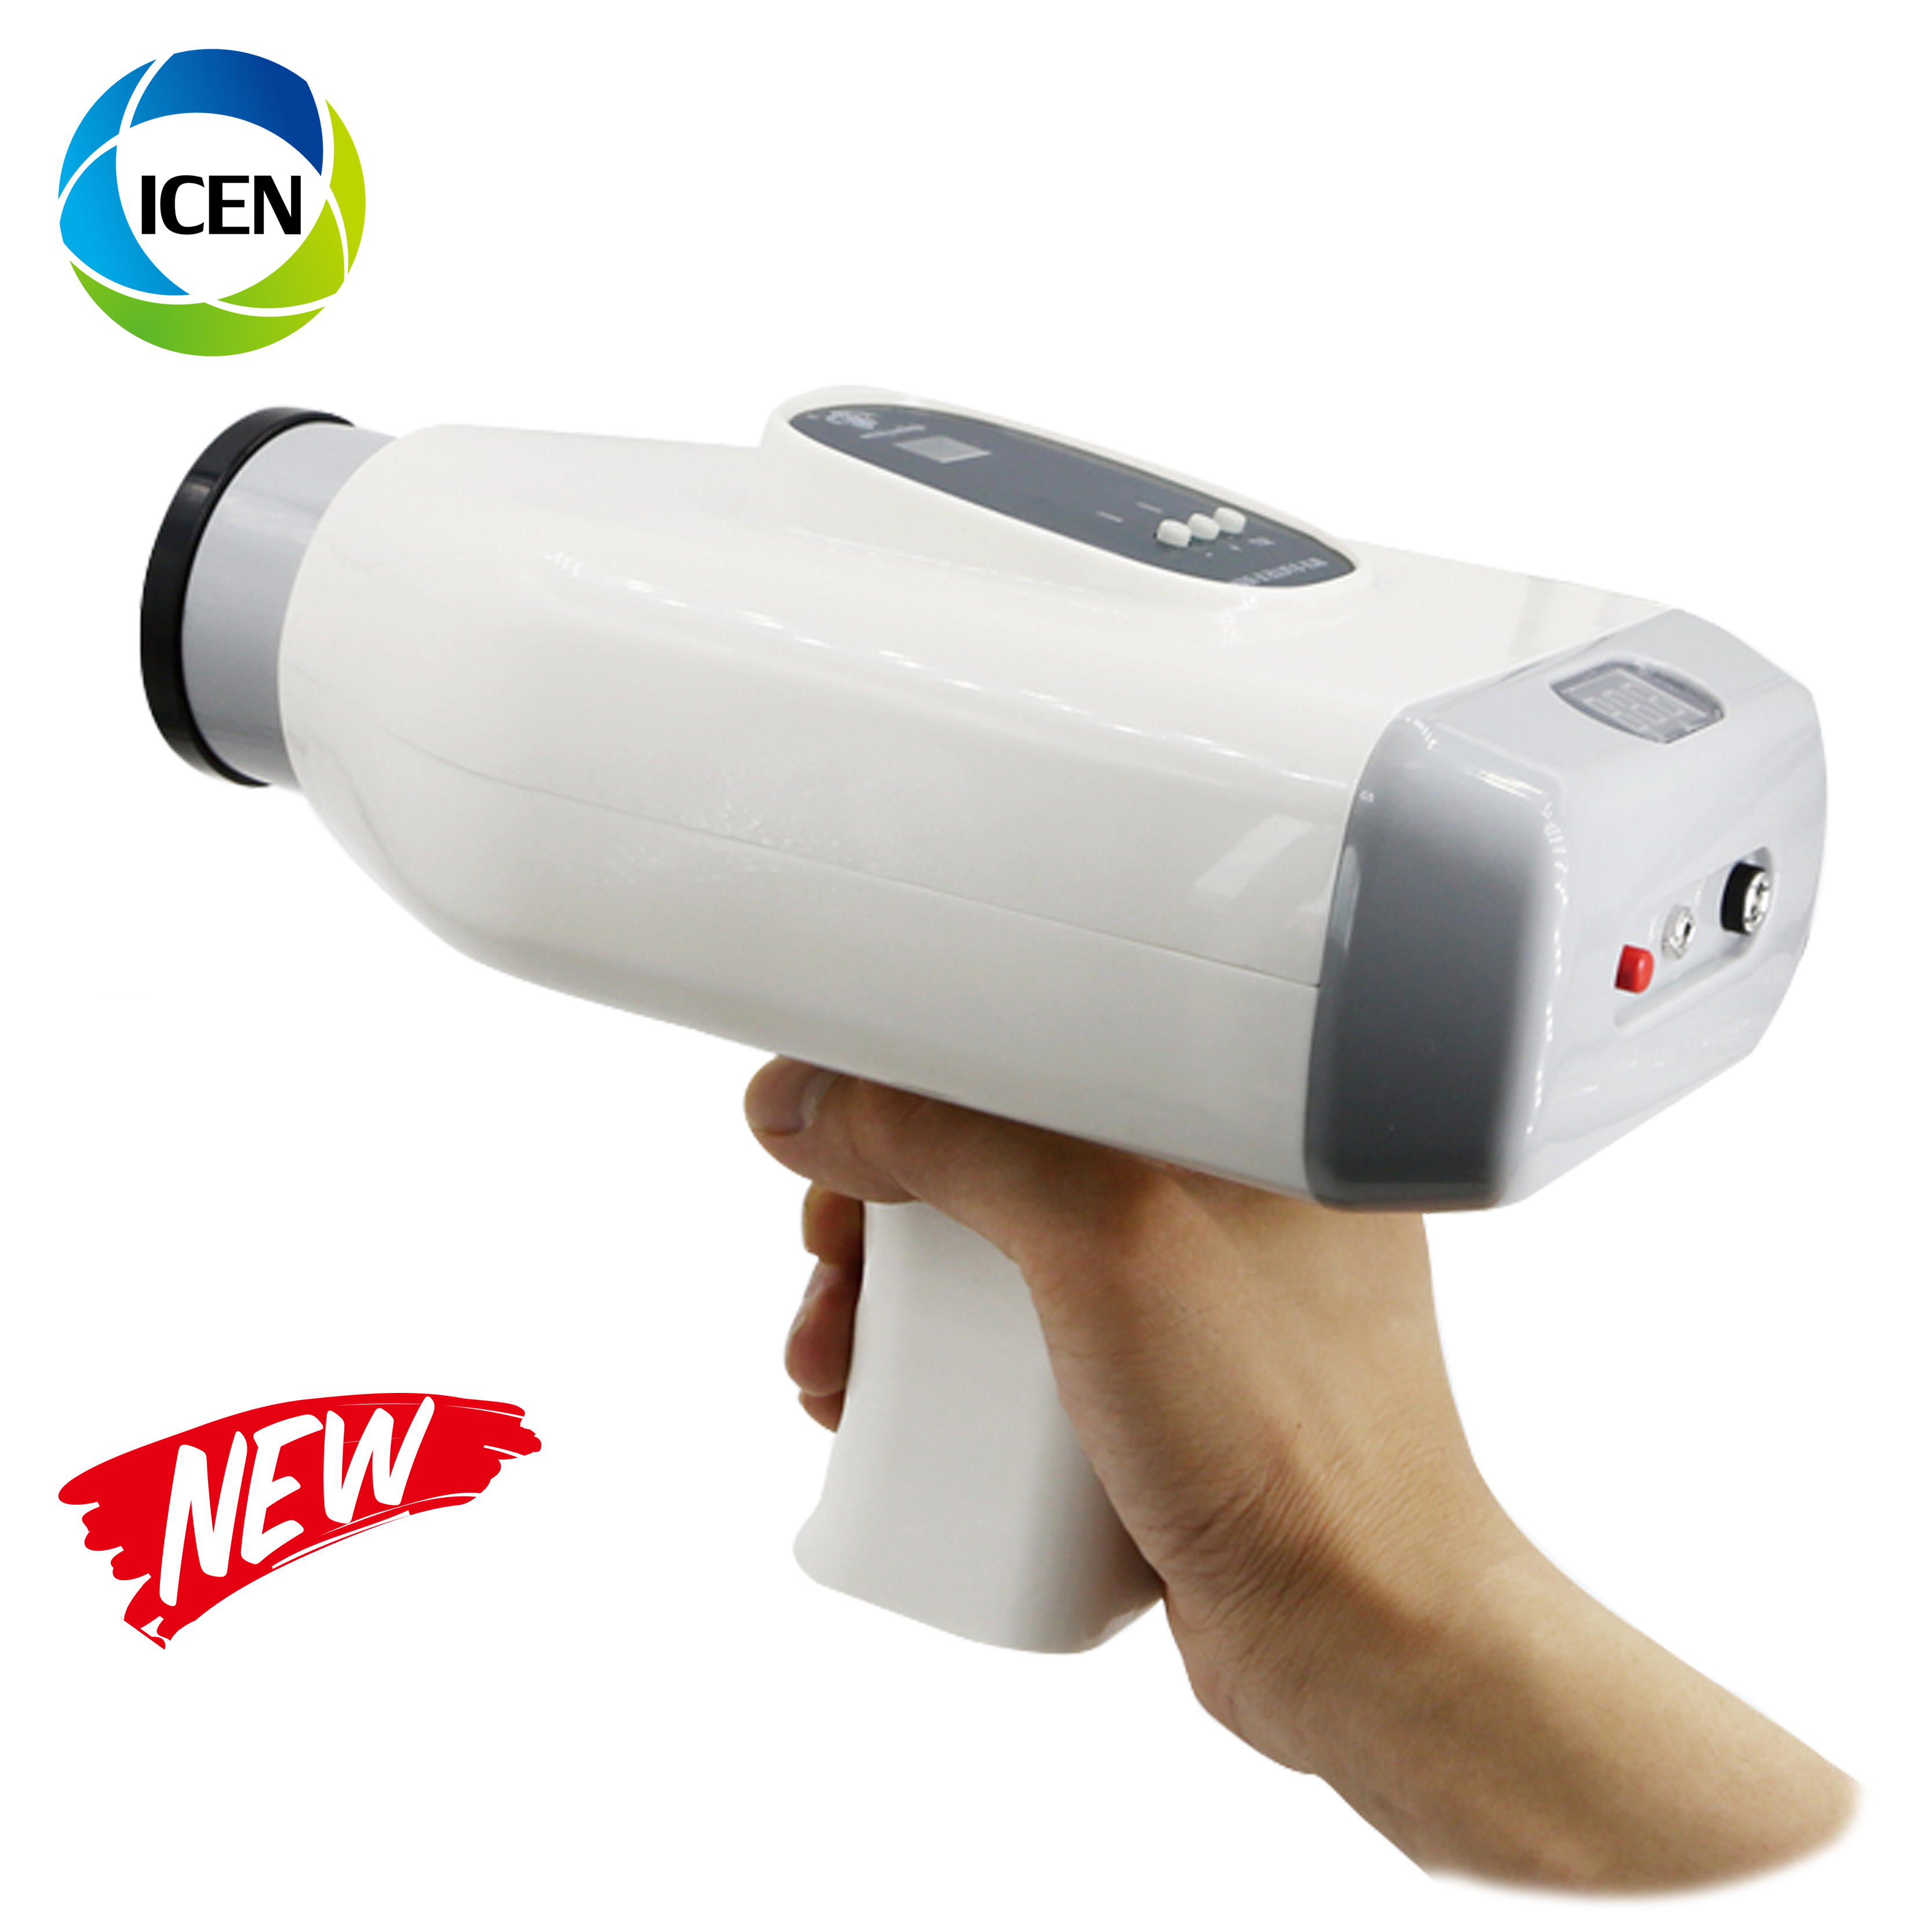 IN-BLX high quality Handheld Portable Wireless RVG Dental X- Ray Machine price